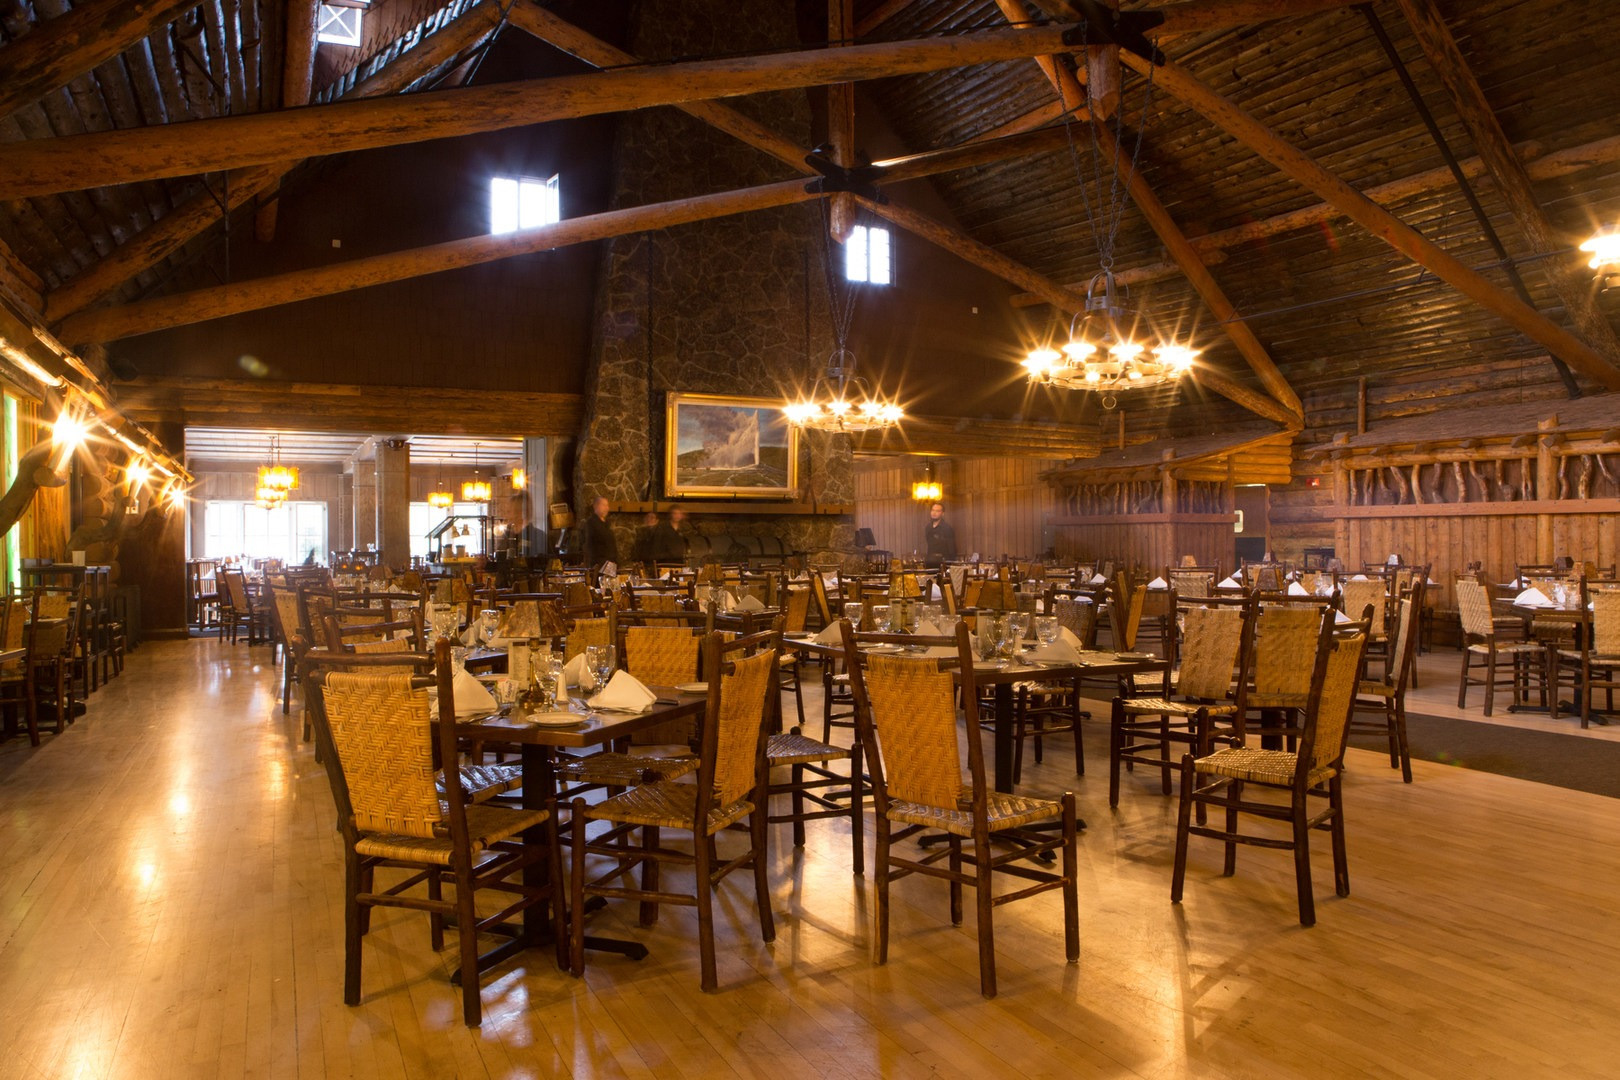 old faithful inn - yellowstone national park - lodging in wyoming